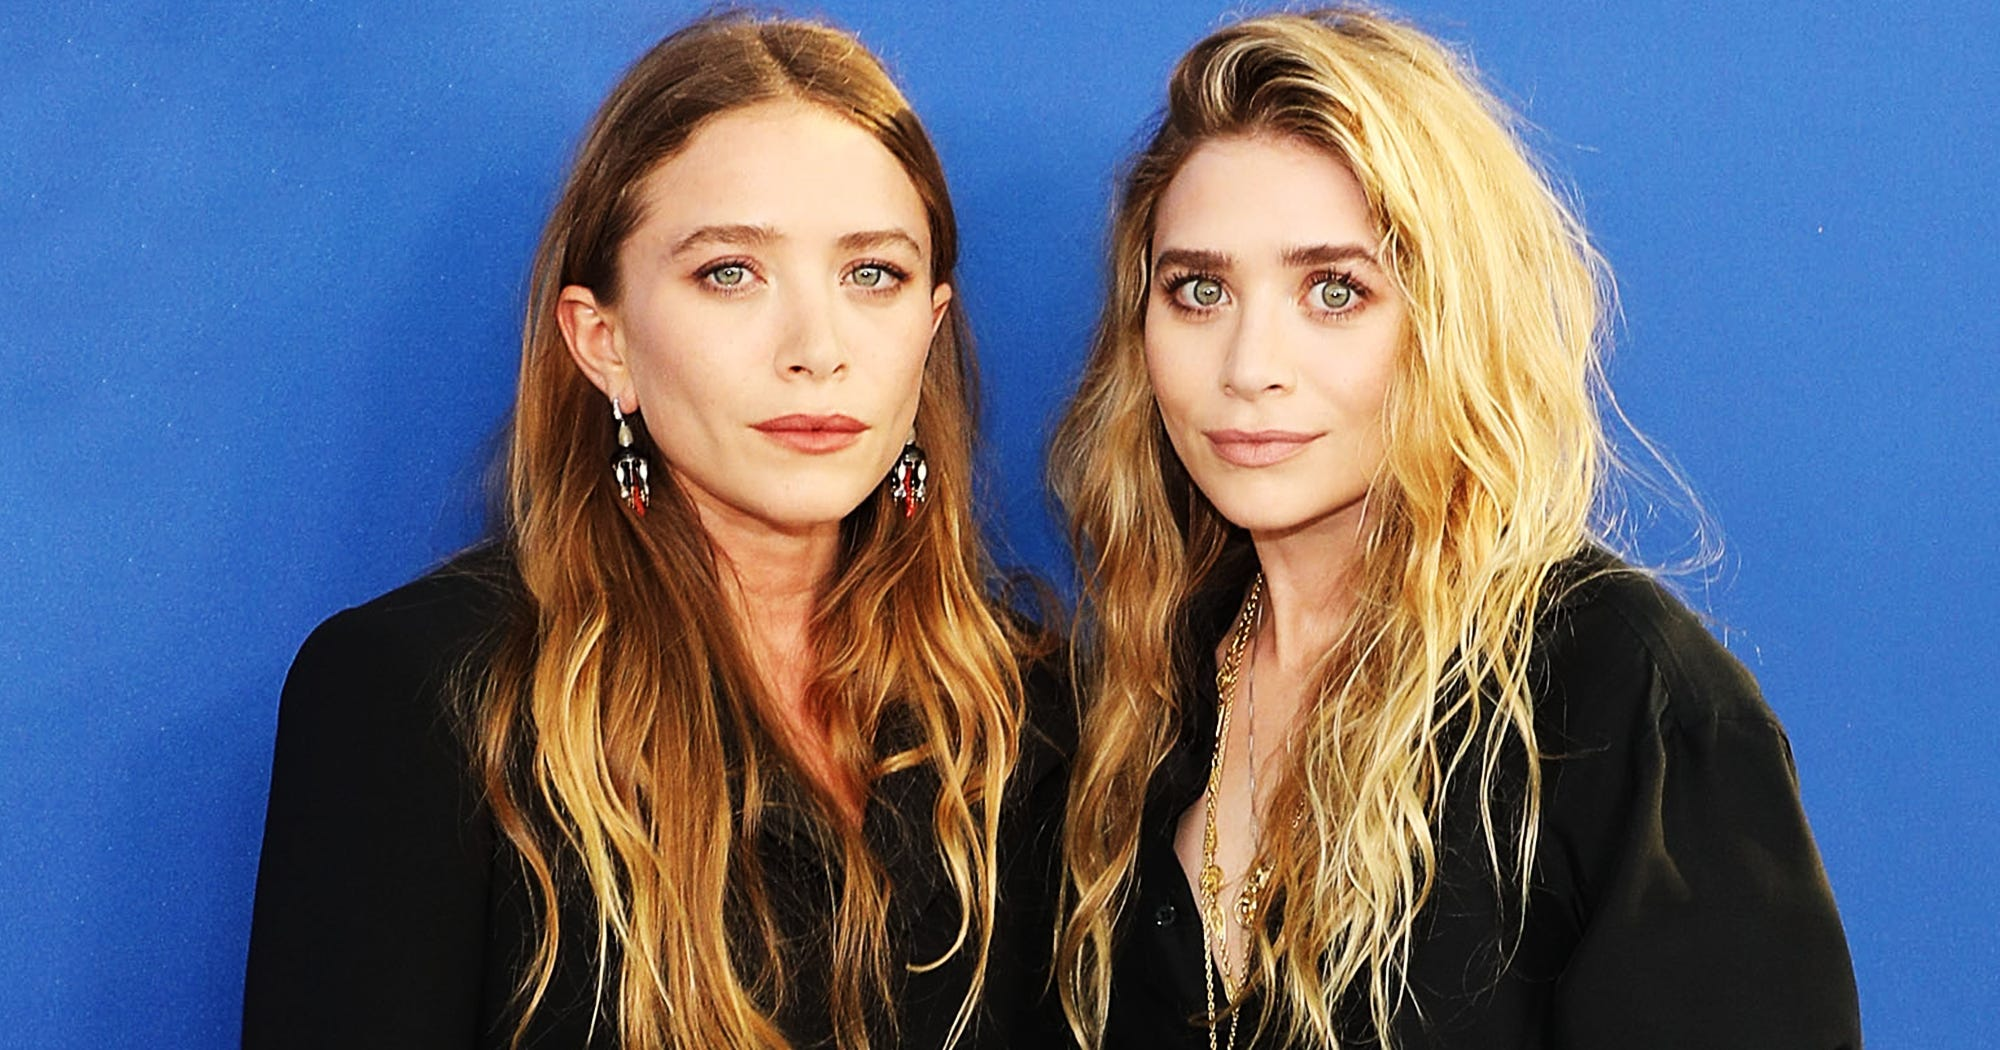 Ashley mary-kate and of pictures olsen